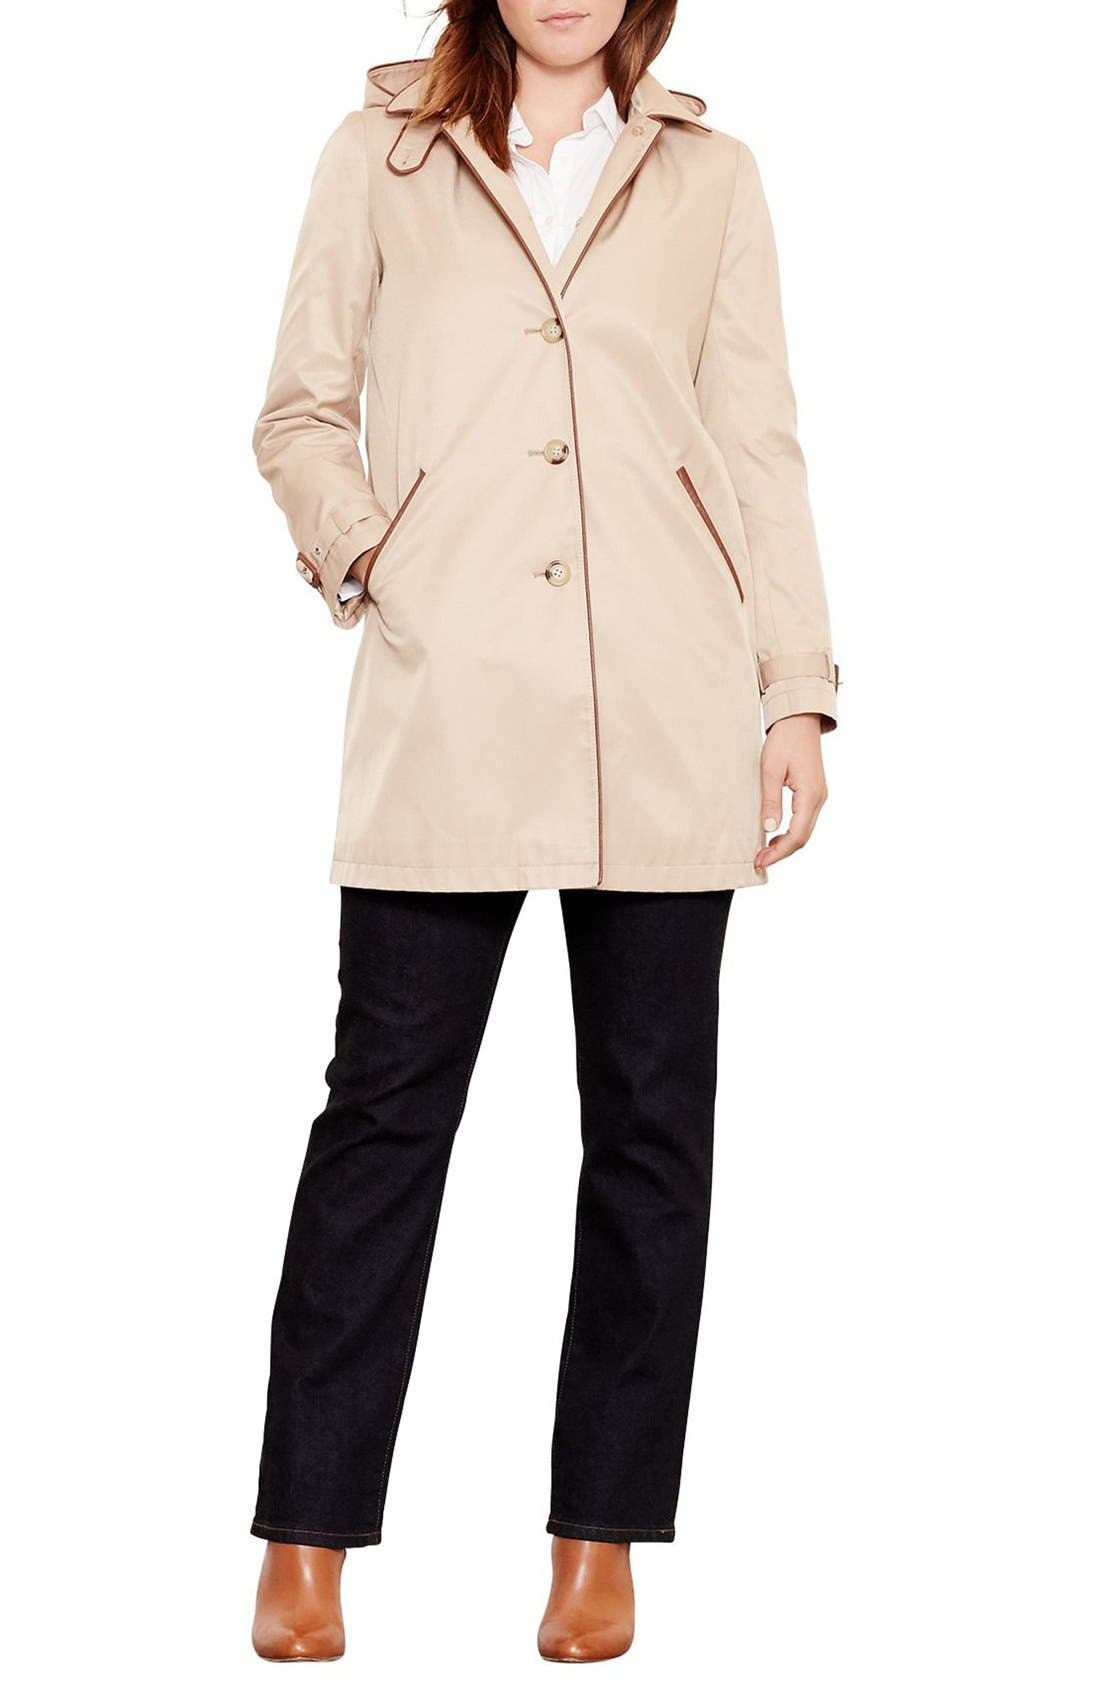 Main Image - Lauren Ralph Lauren Faux Leather Trim Raincoat (Plus Size)